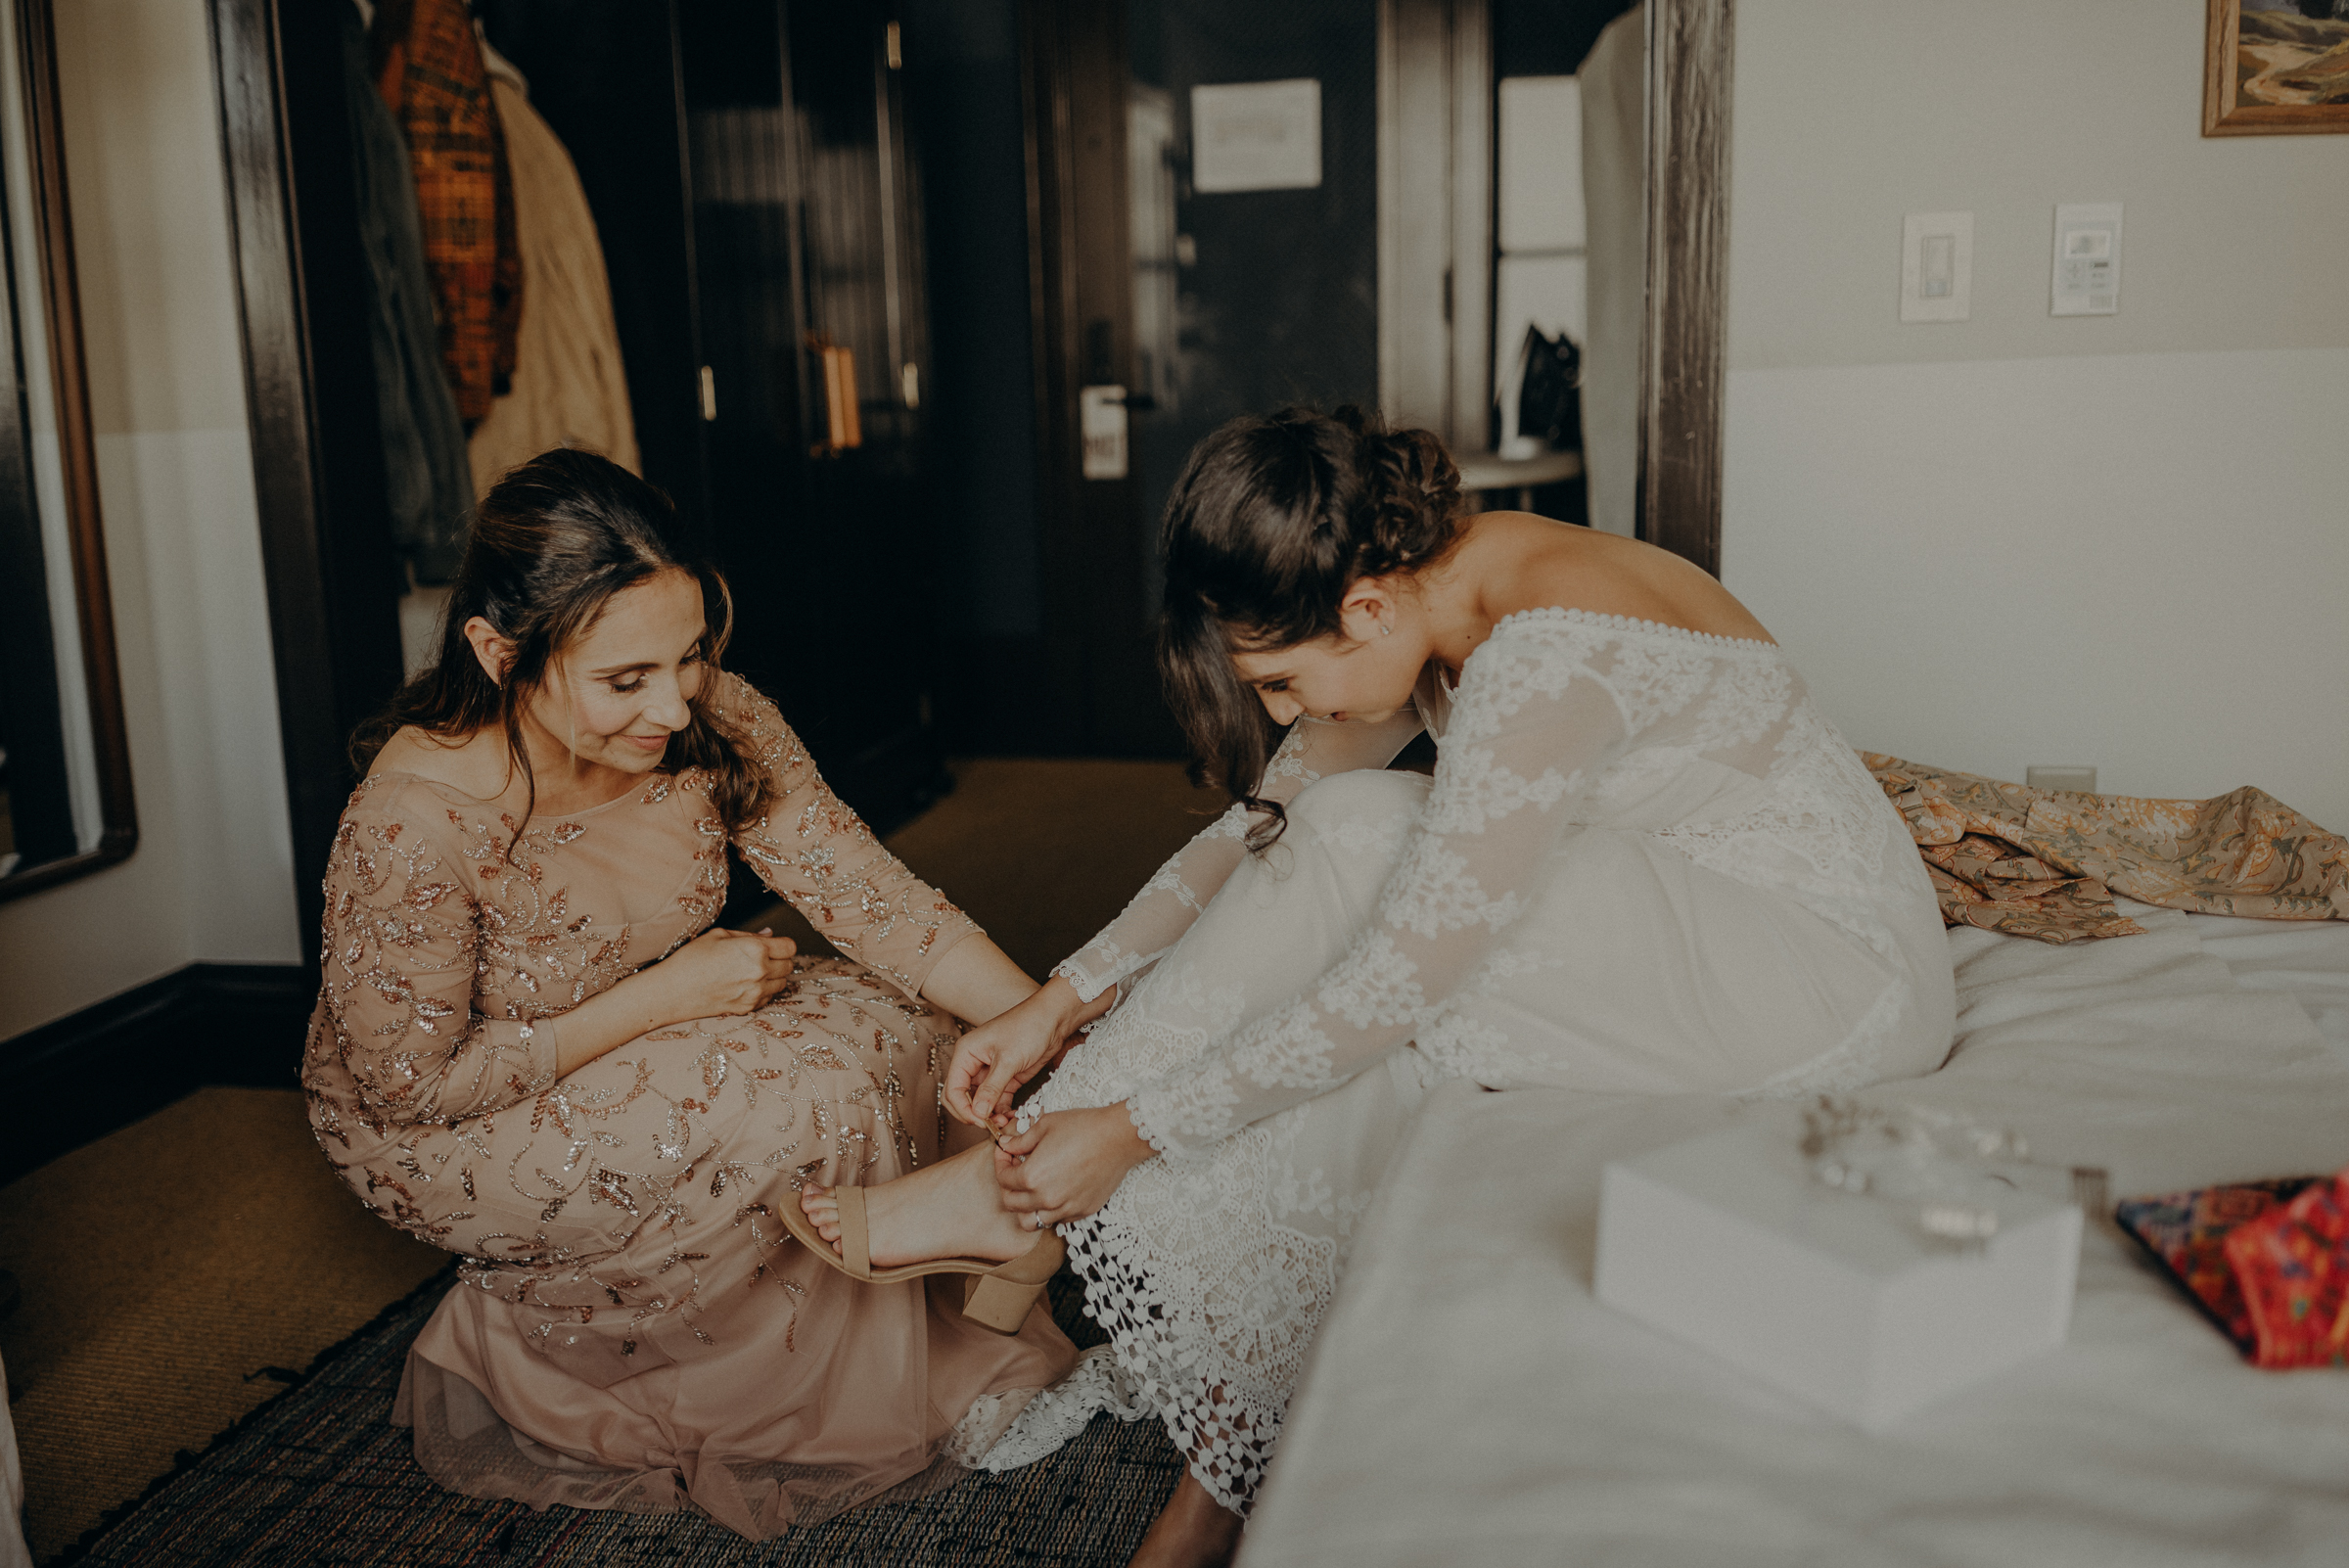 Isaiah + Taylor Photography - The Unique Space Wedding, Los Angeles Wedding Photography 012.jpg